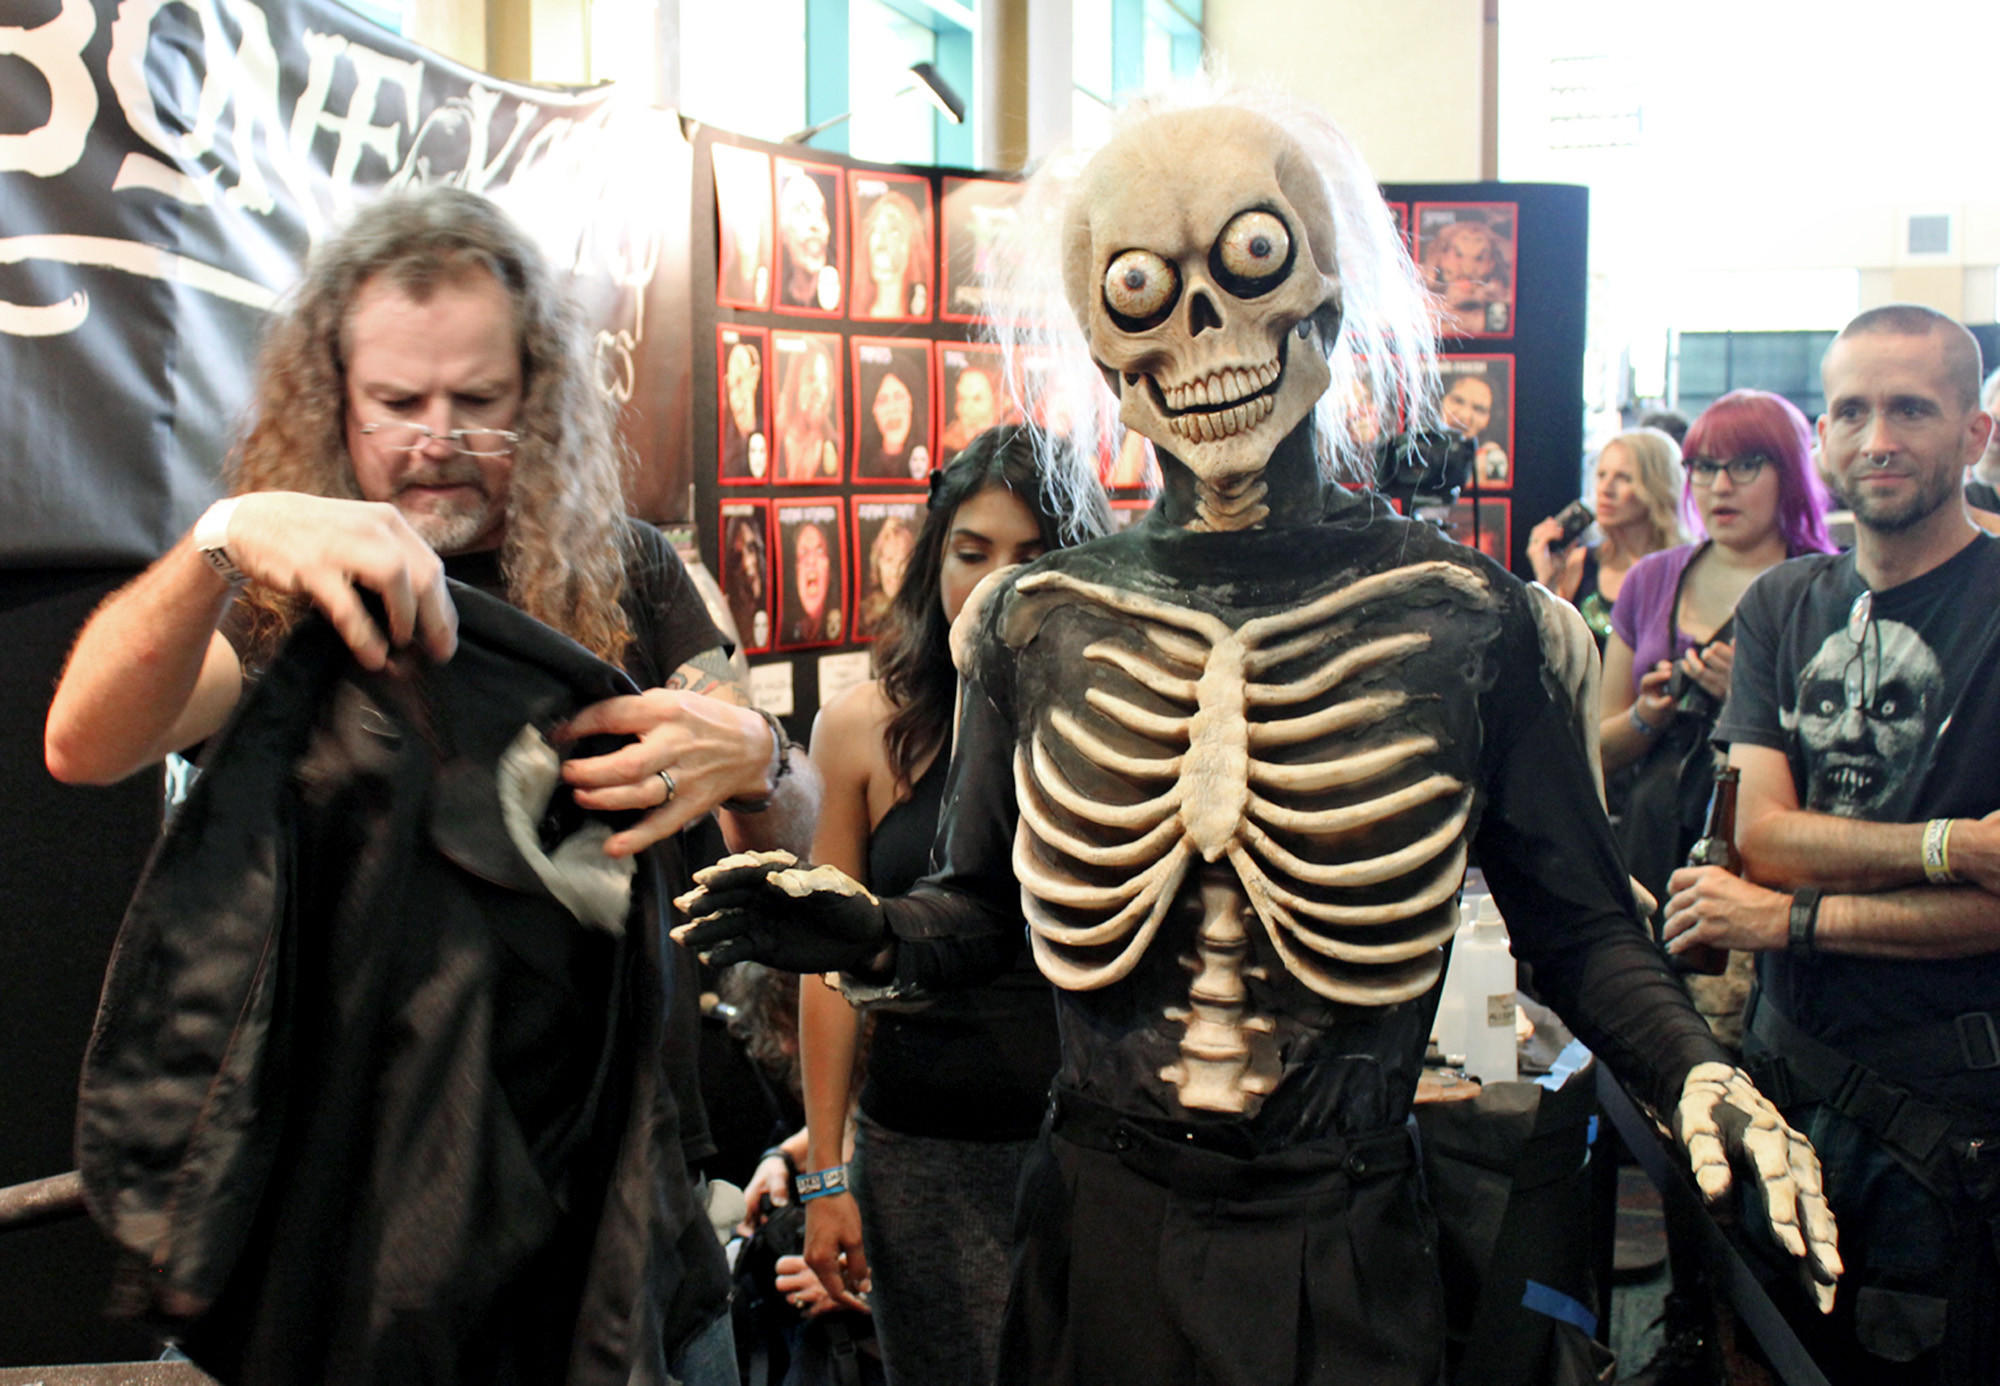 Larry Bones puts the finishing touches on a makeup demonstration at his company's booth at Monsterpalooza.